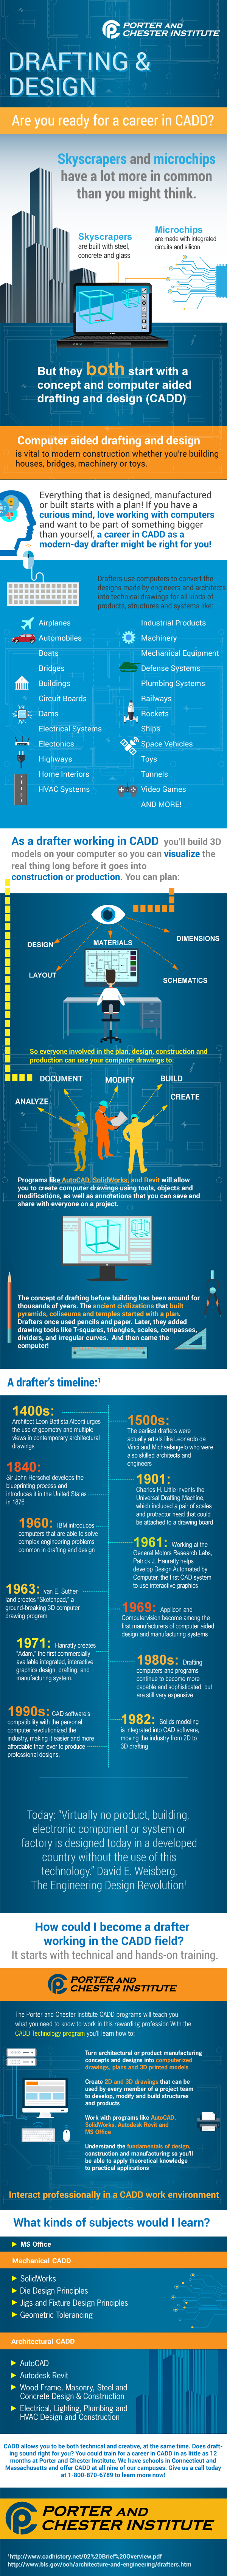 Computer Aided Drafting and Design Infographic